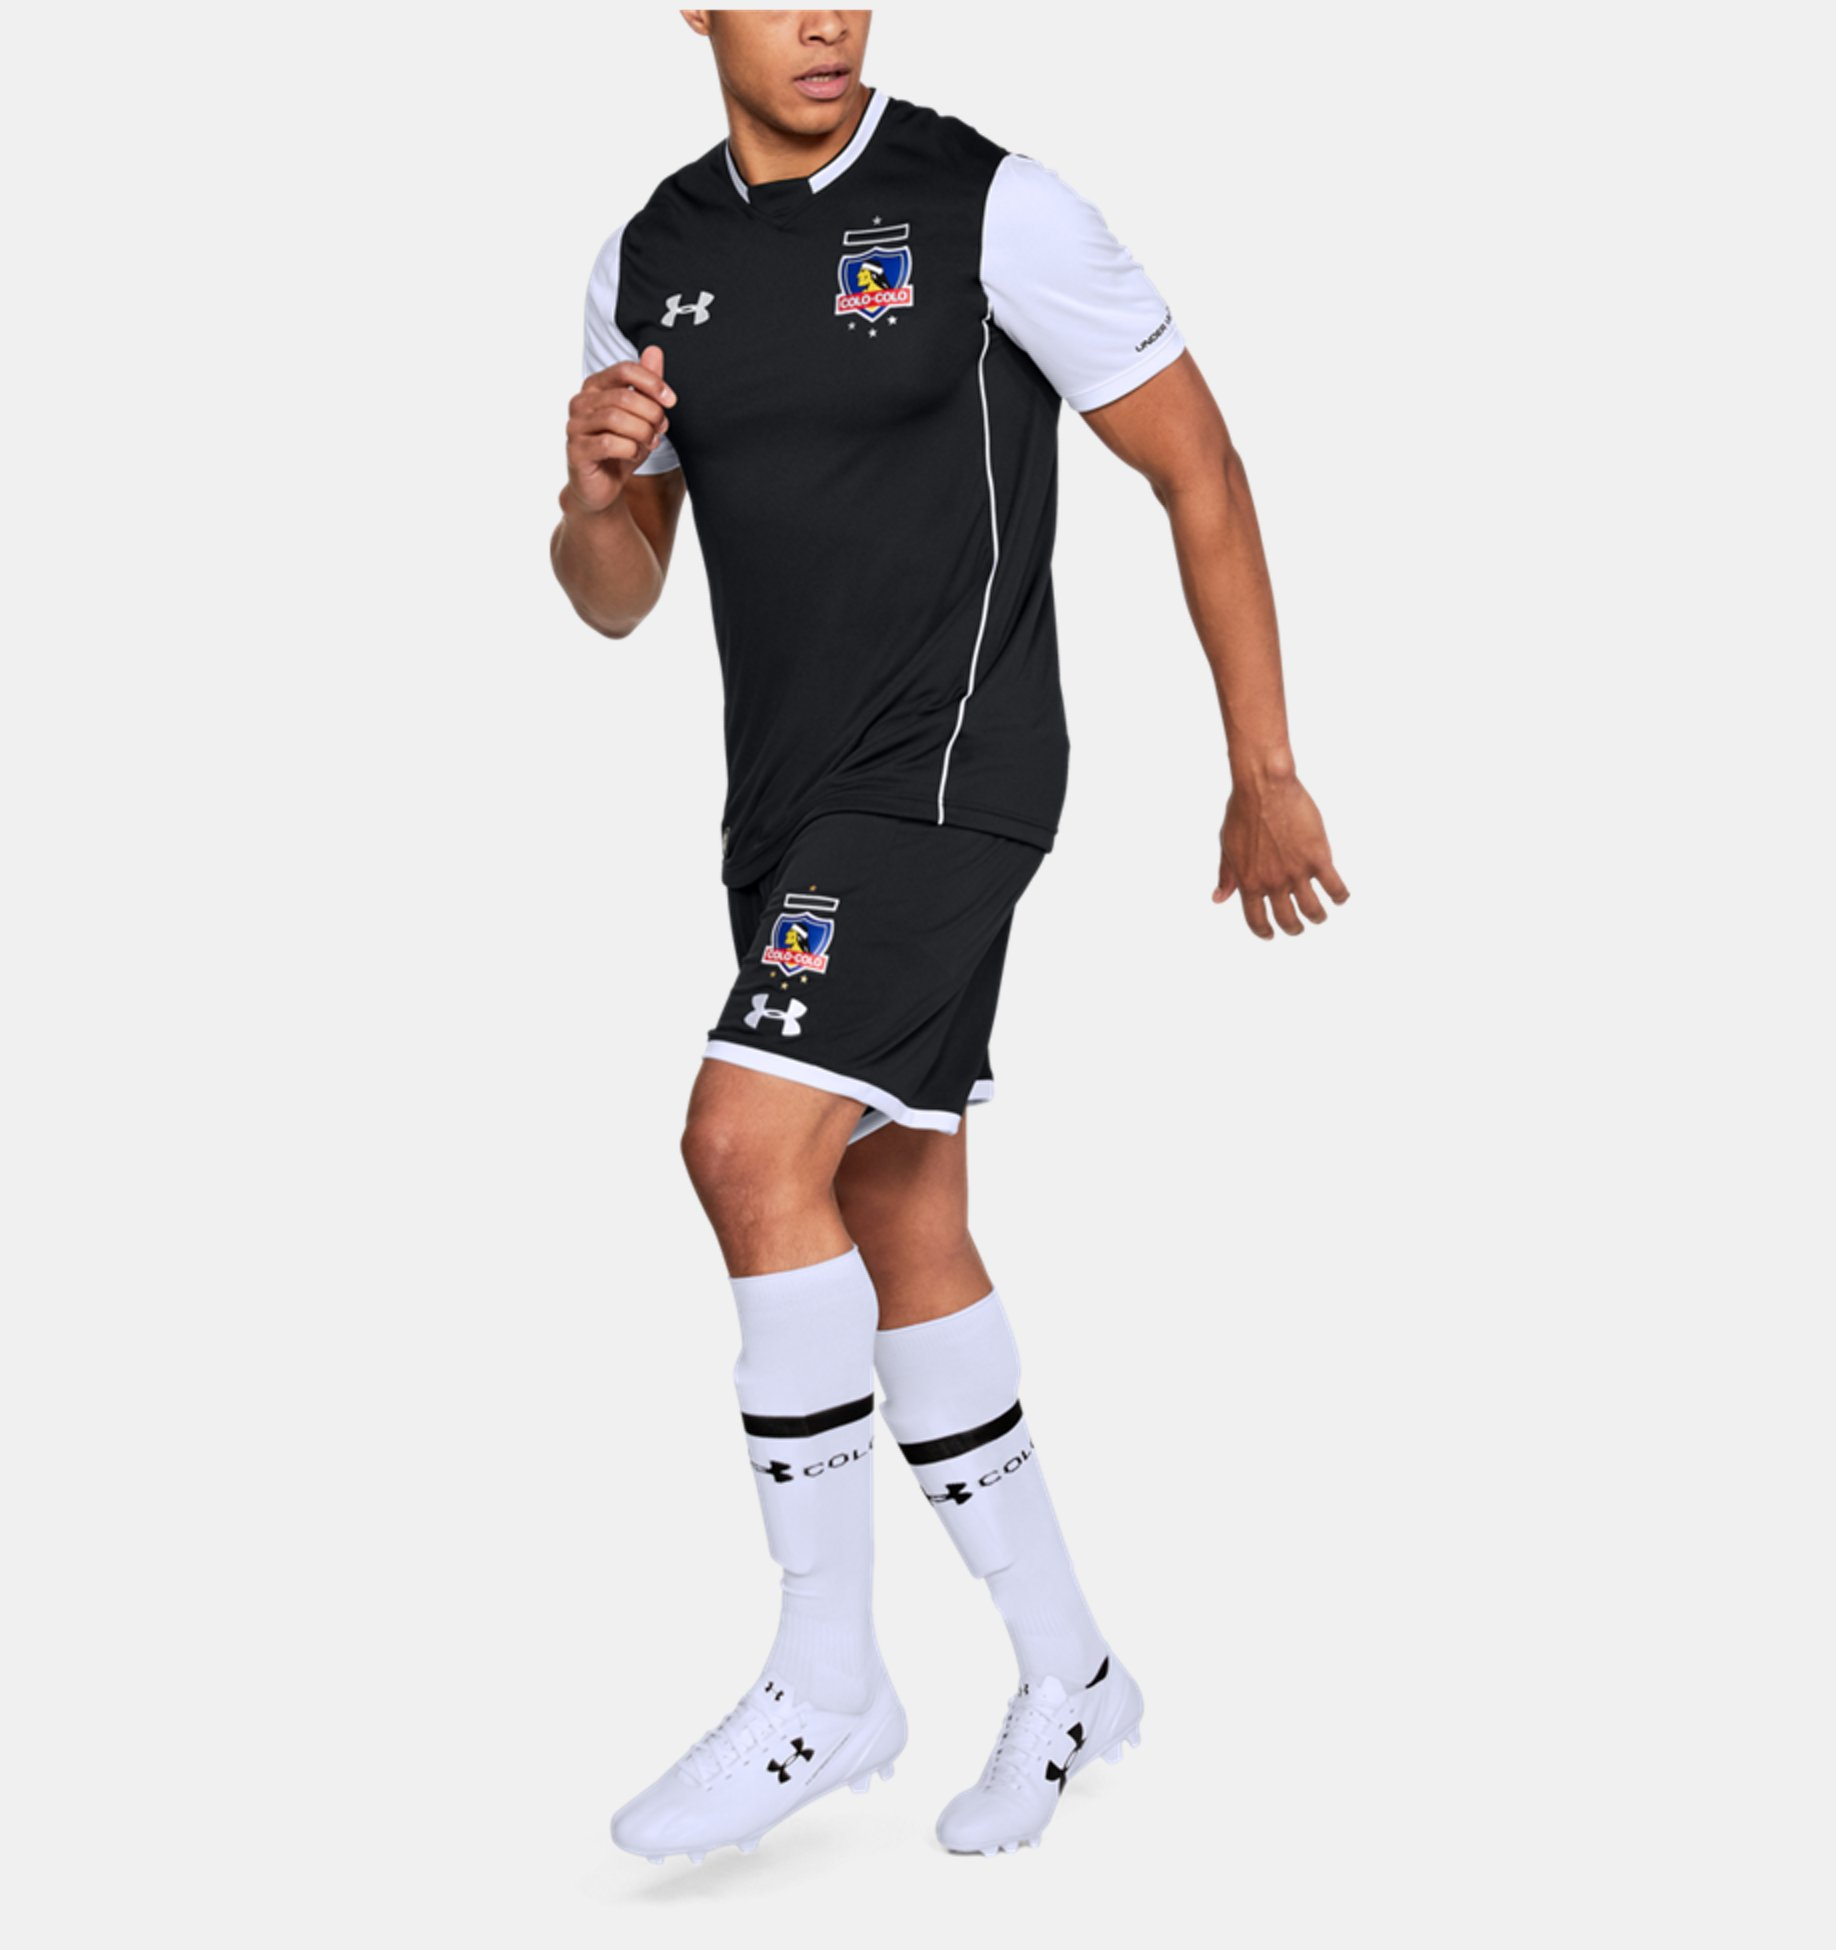 the best attitude 04445 03dfd Colo-Colo 2018 Under Armour Away Kit - FOOTBALL FASHION.ORG